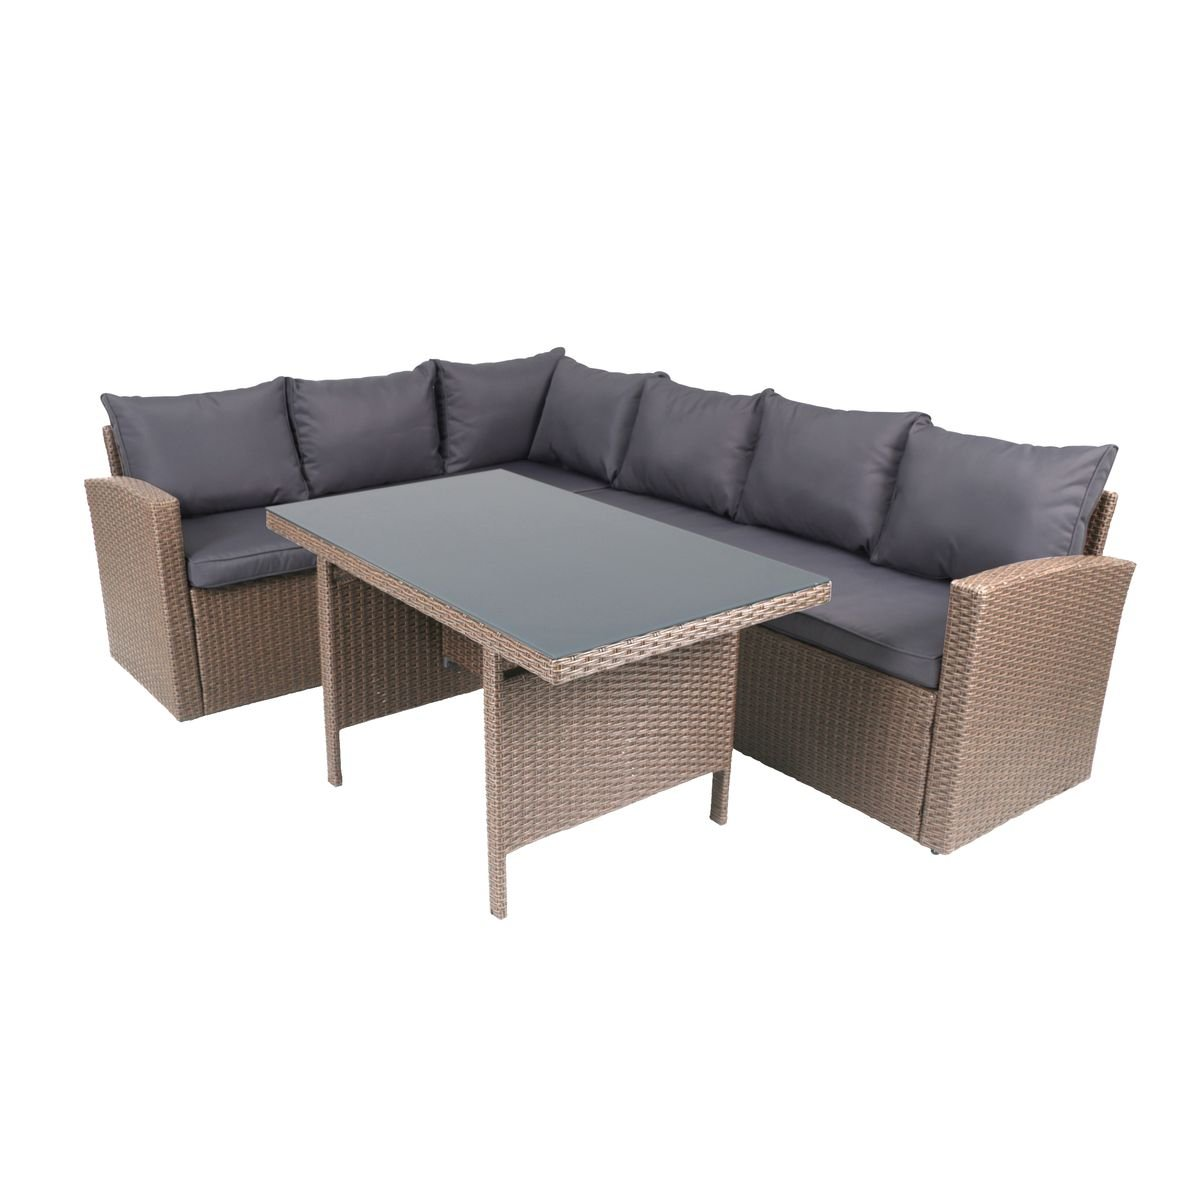 greemotion rattan lounge hamburg gartenm bel set 3 teilig aus polyrattan in braun mit auflagen. Black Bedroom Furniture Sets. Home Design Ideas